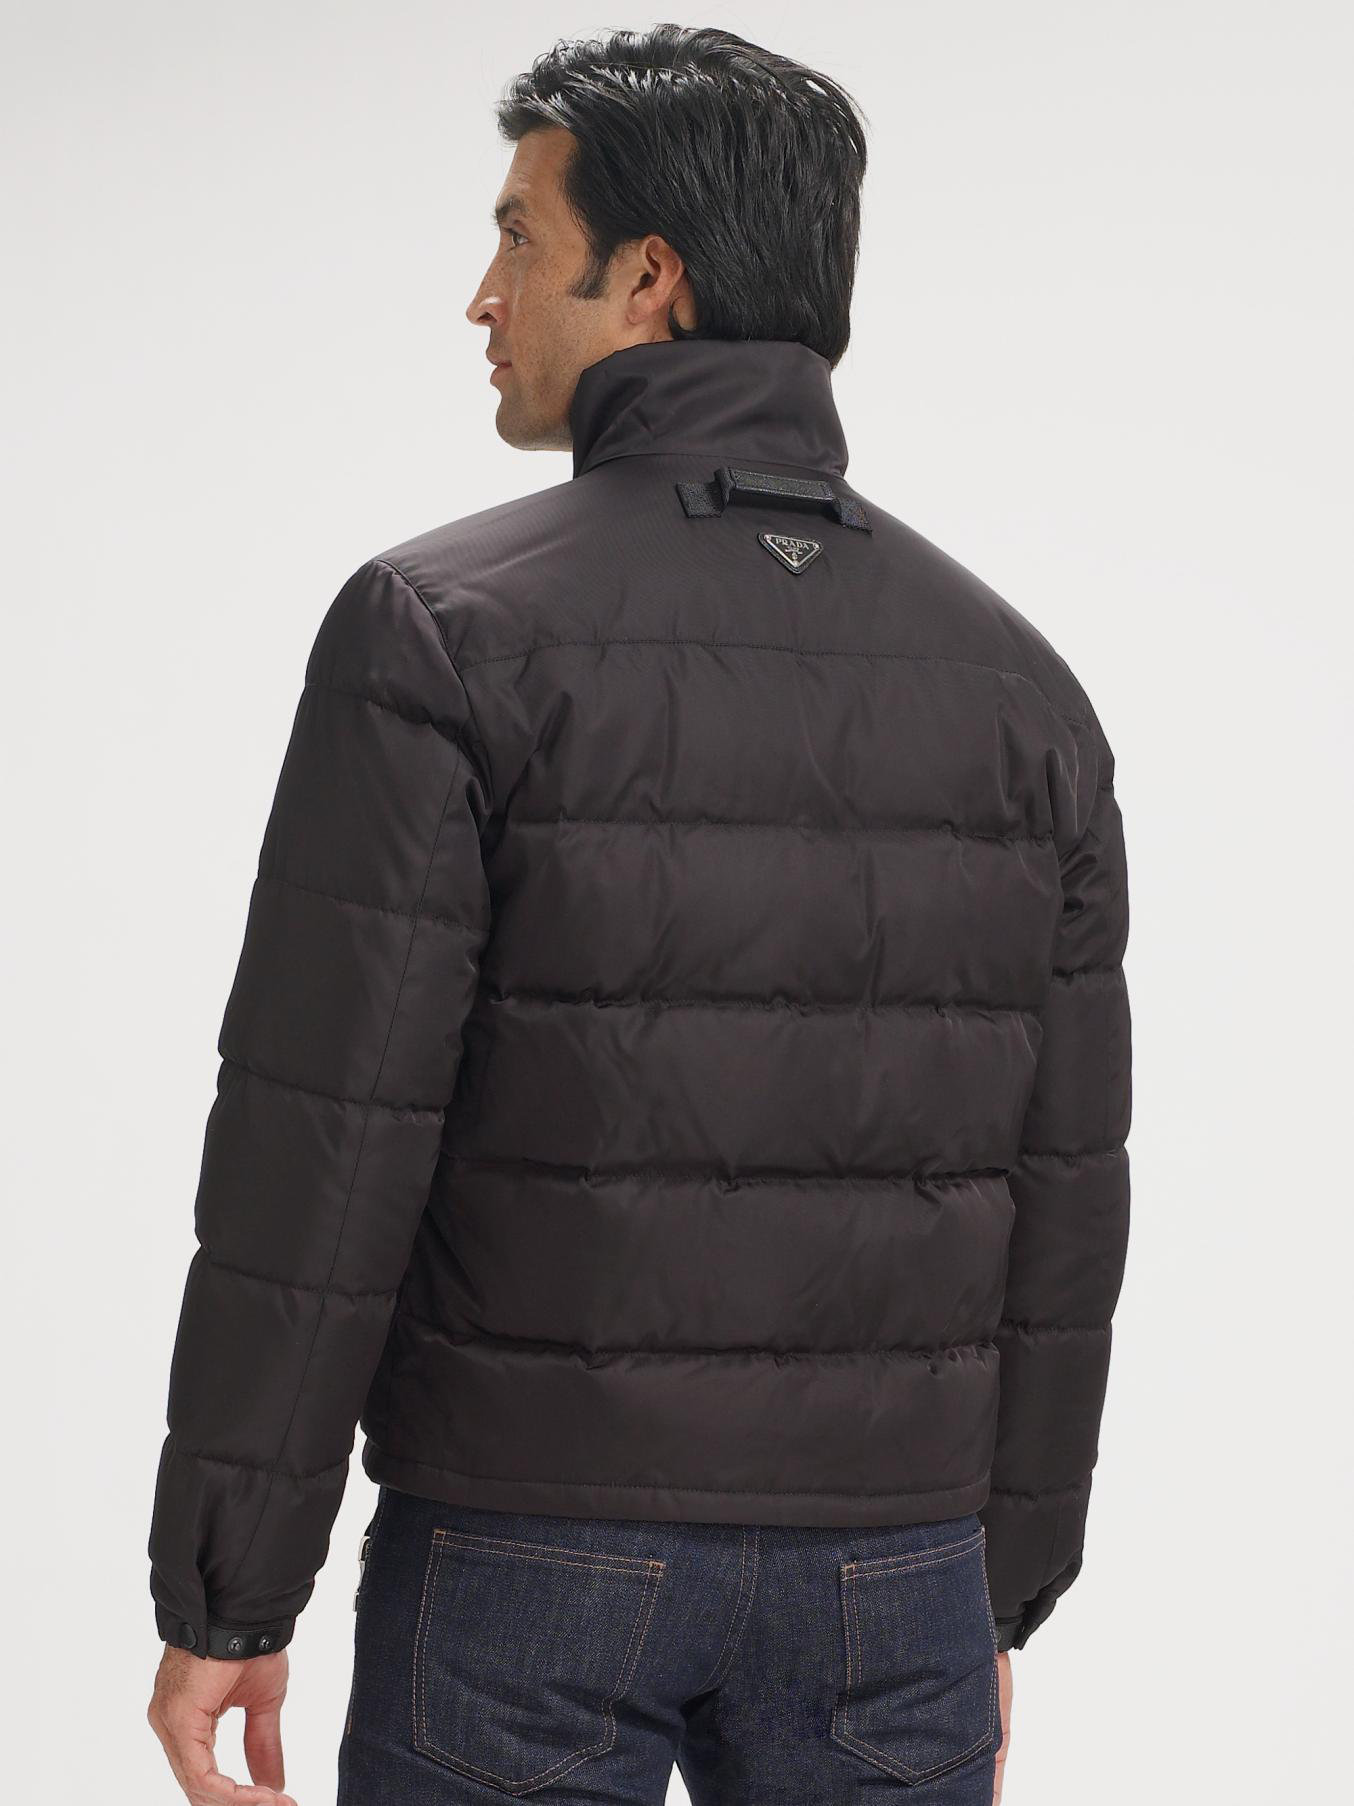 Shop for men's The North Face jackets and coats designed with the athlete in mind combining style, comfort and performance like never before.